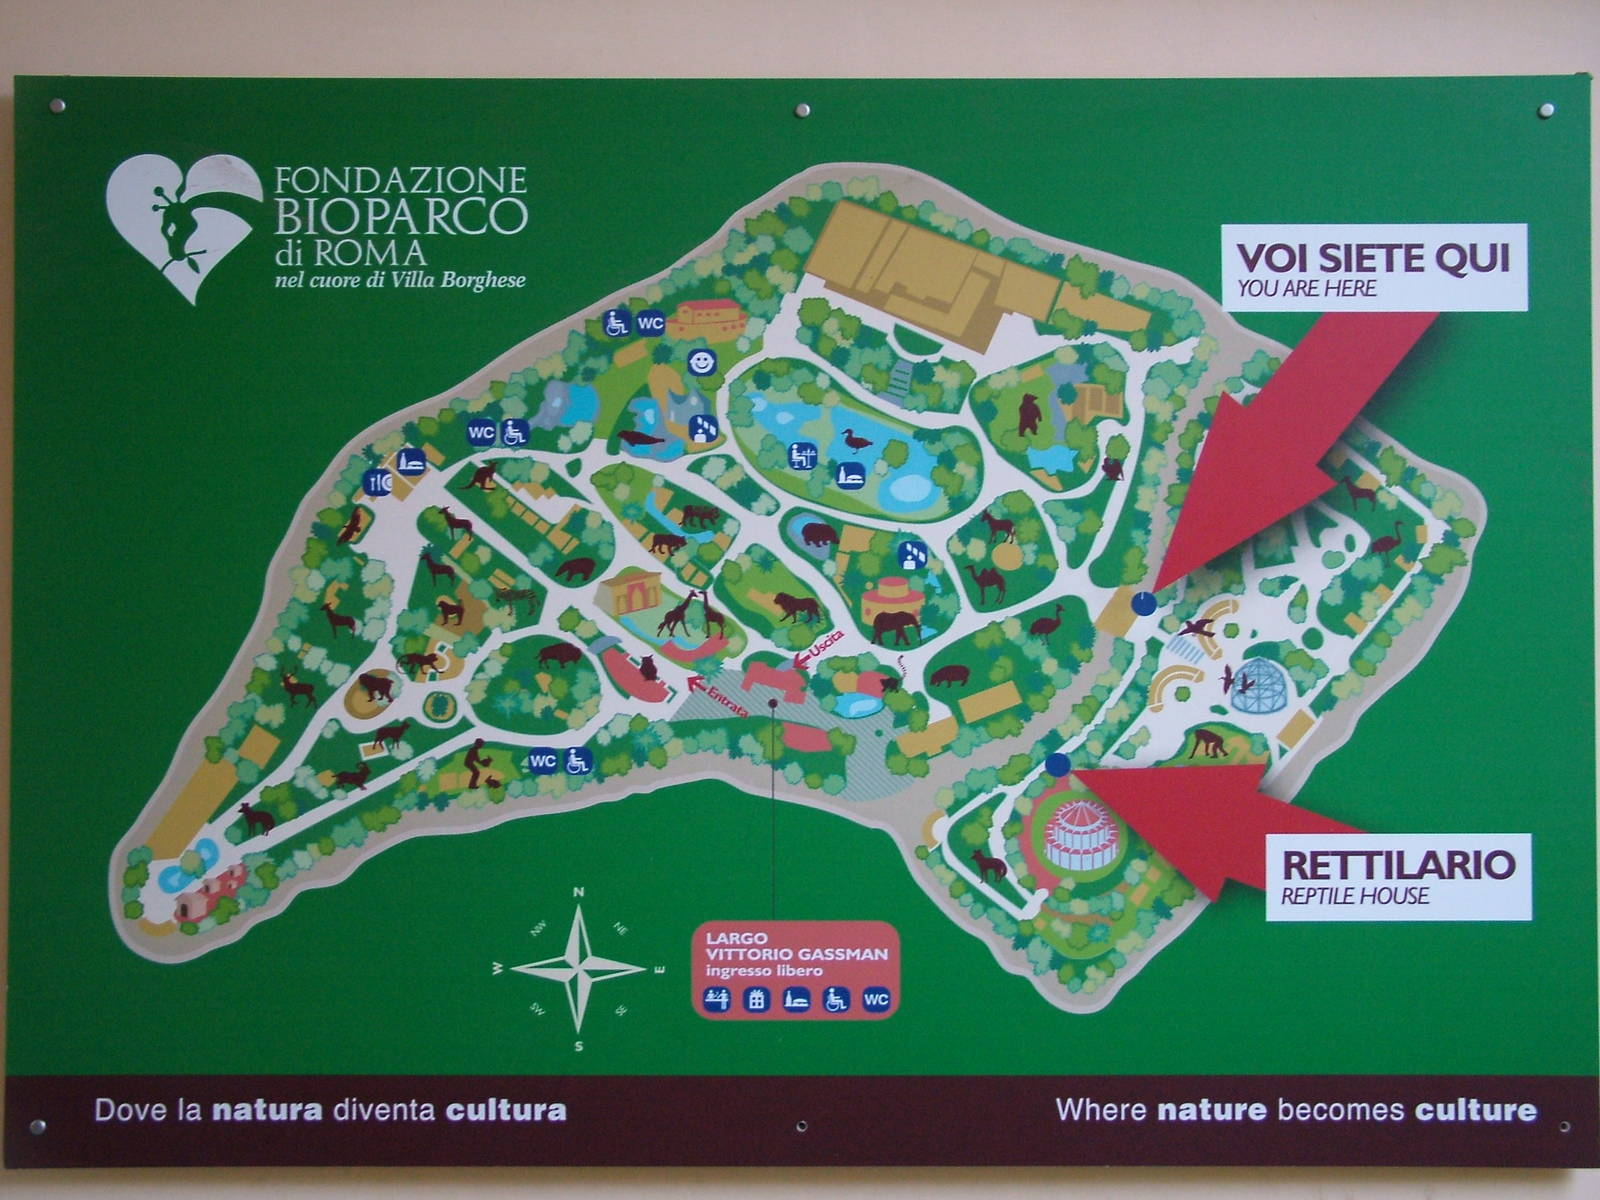 Bioparco Rome, Map of Bioparco Rome 15/10/09 | ZooChat